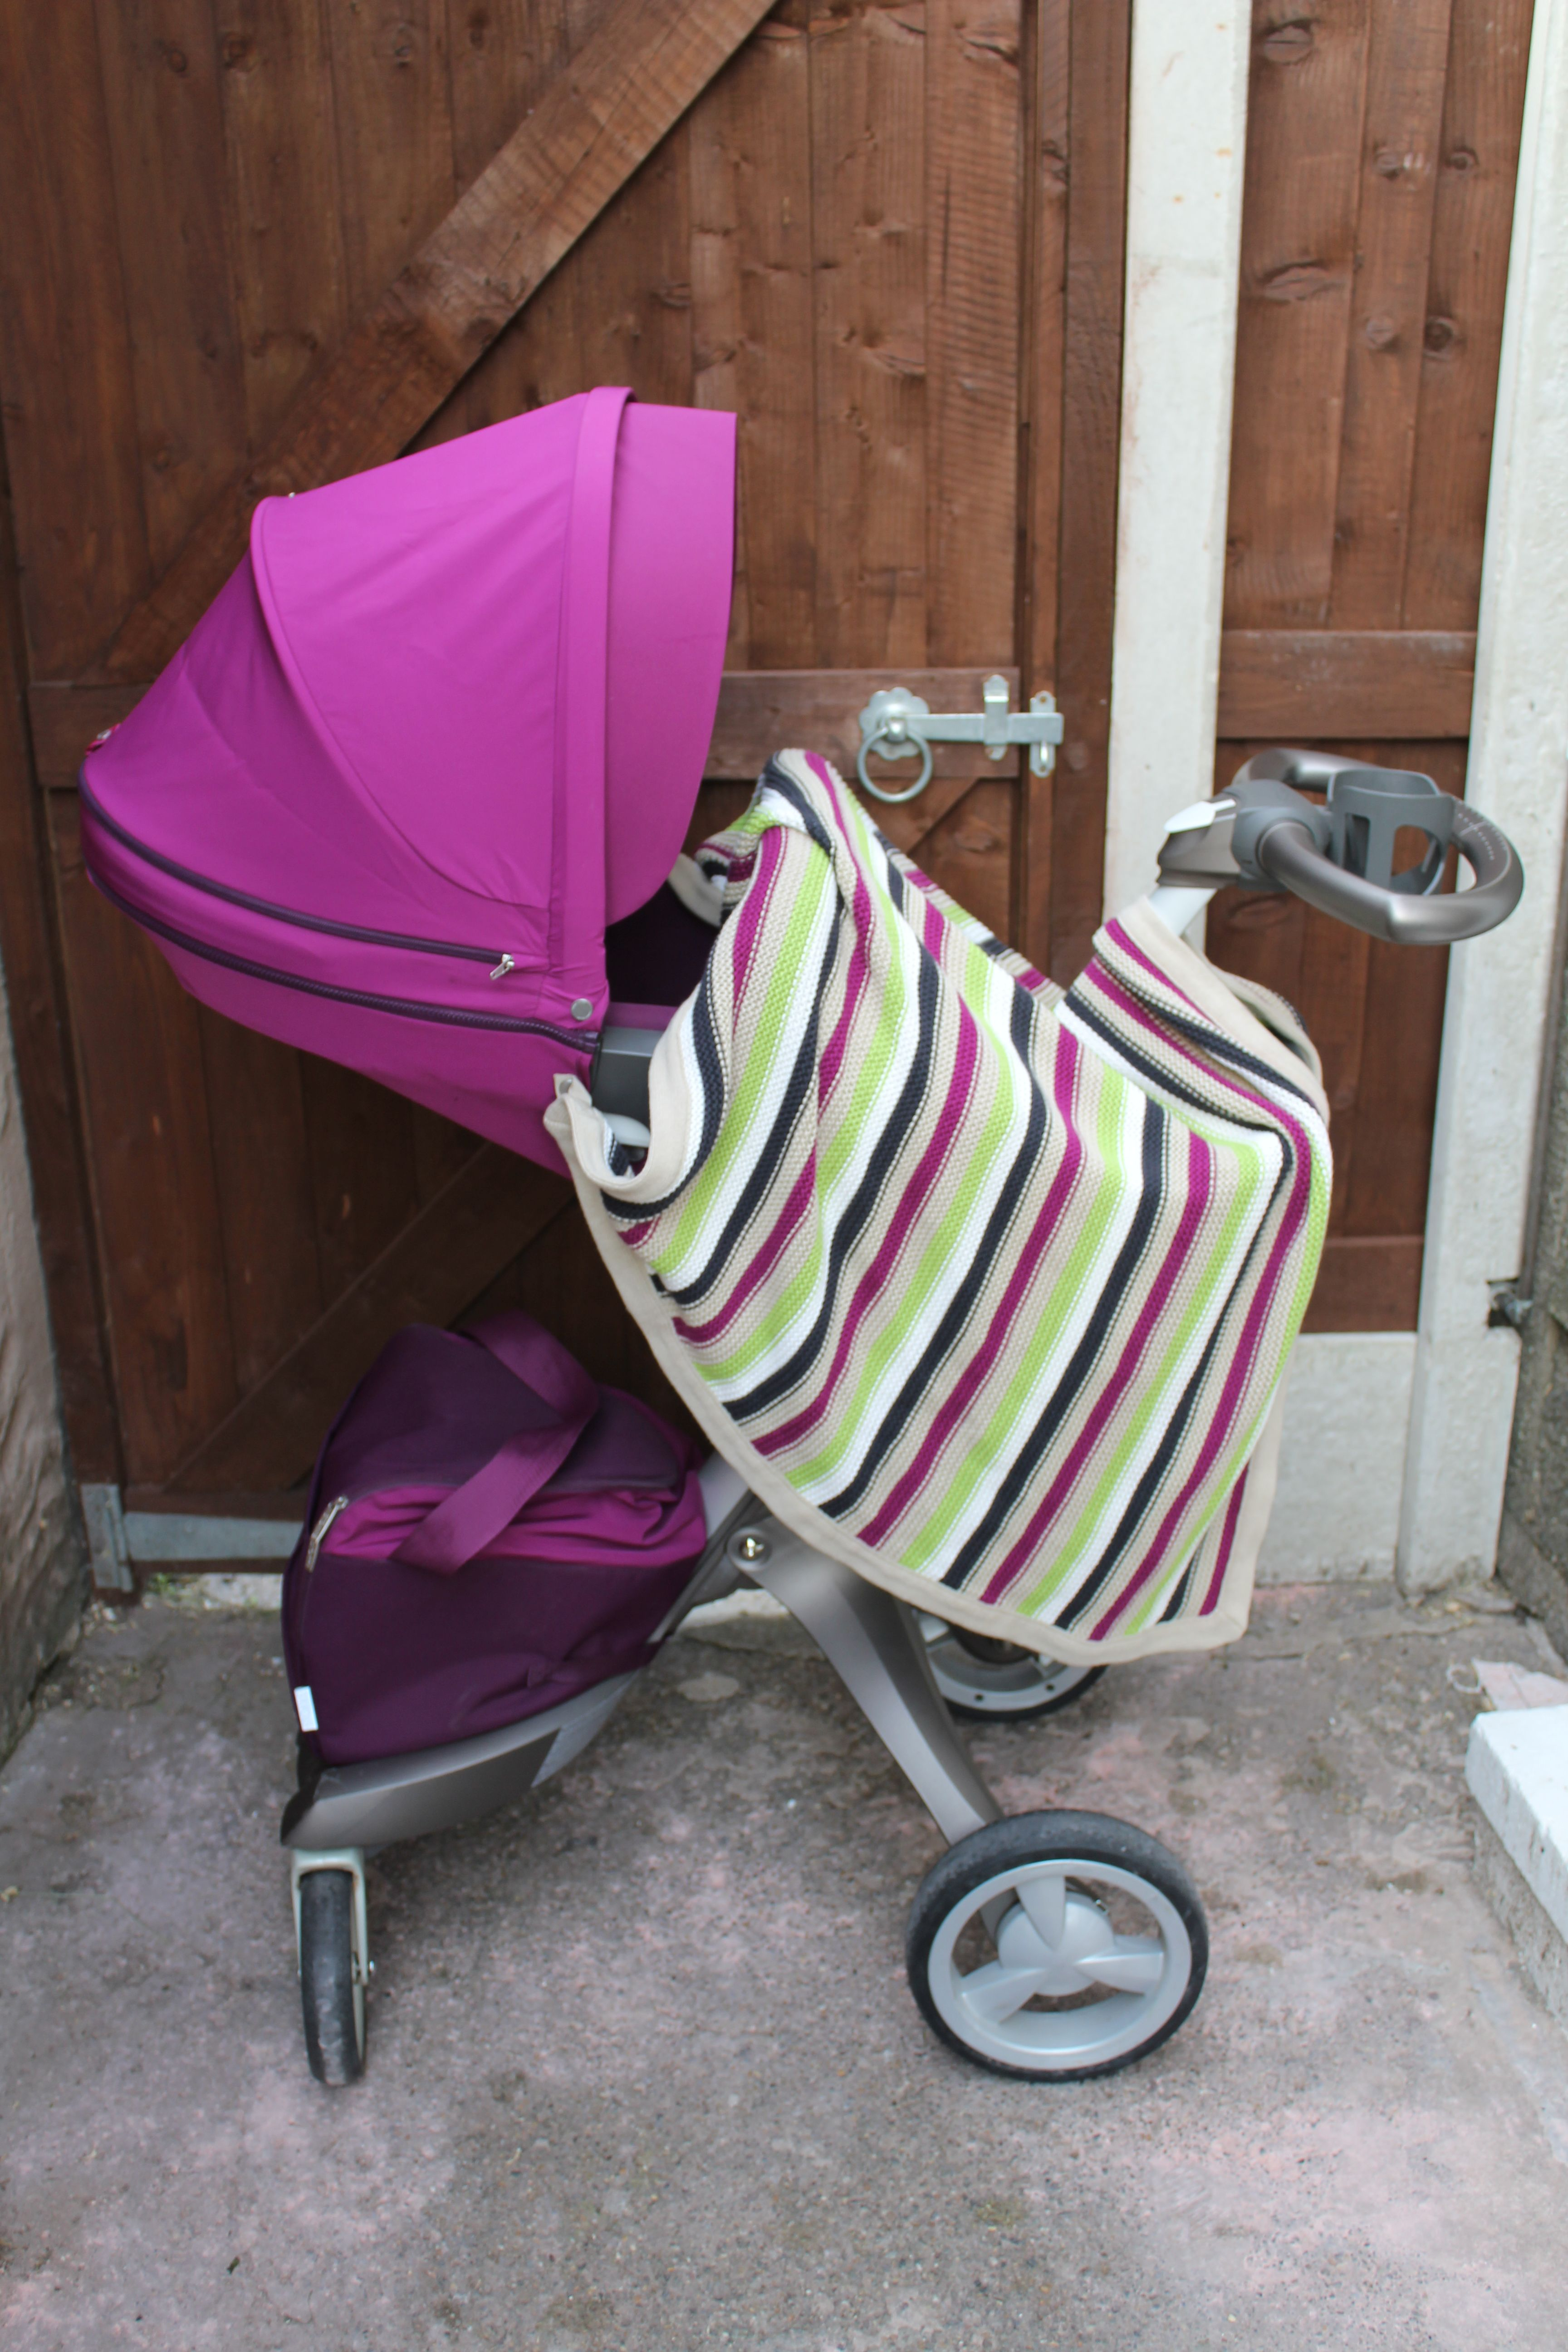 Silla Stokke Xplory Stokke Xplory With Purple Style Kit Textiles And The Green